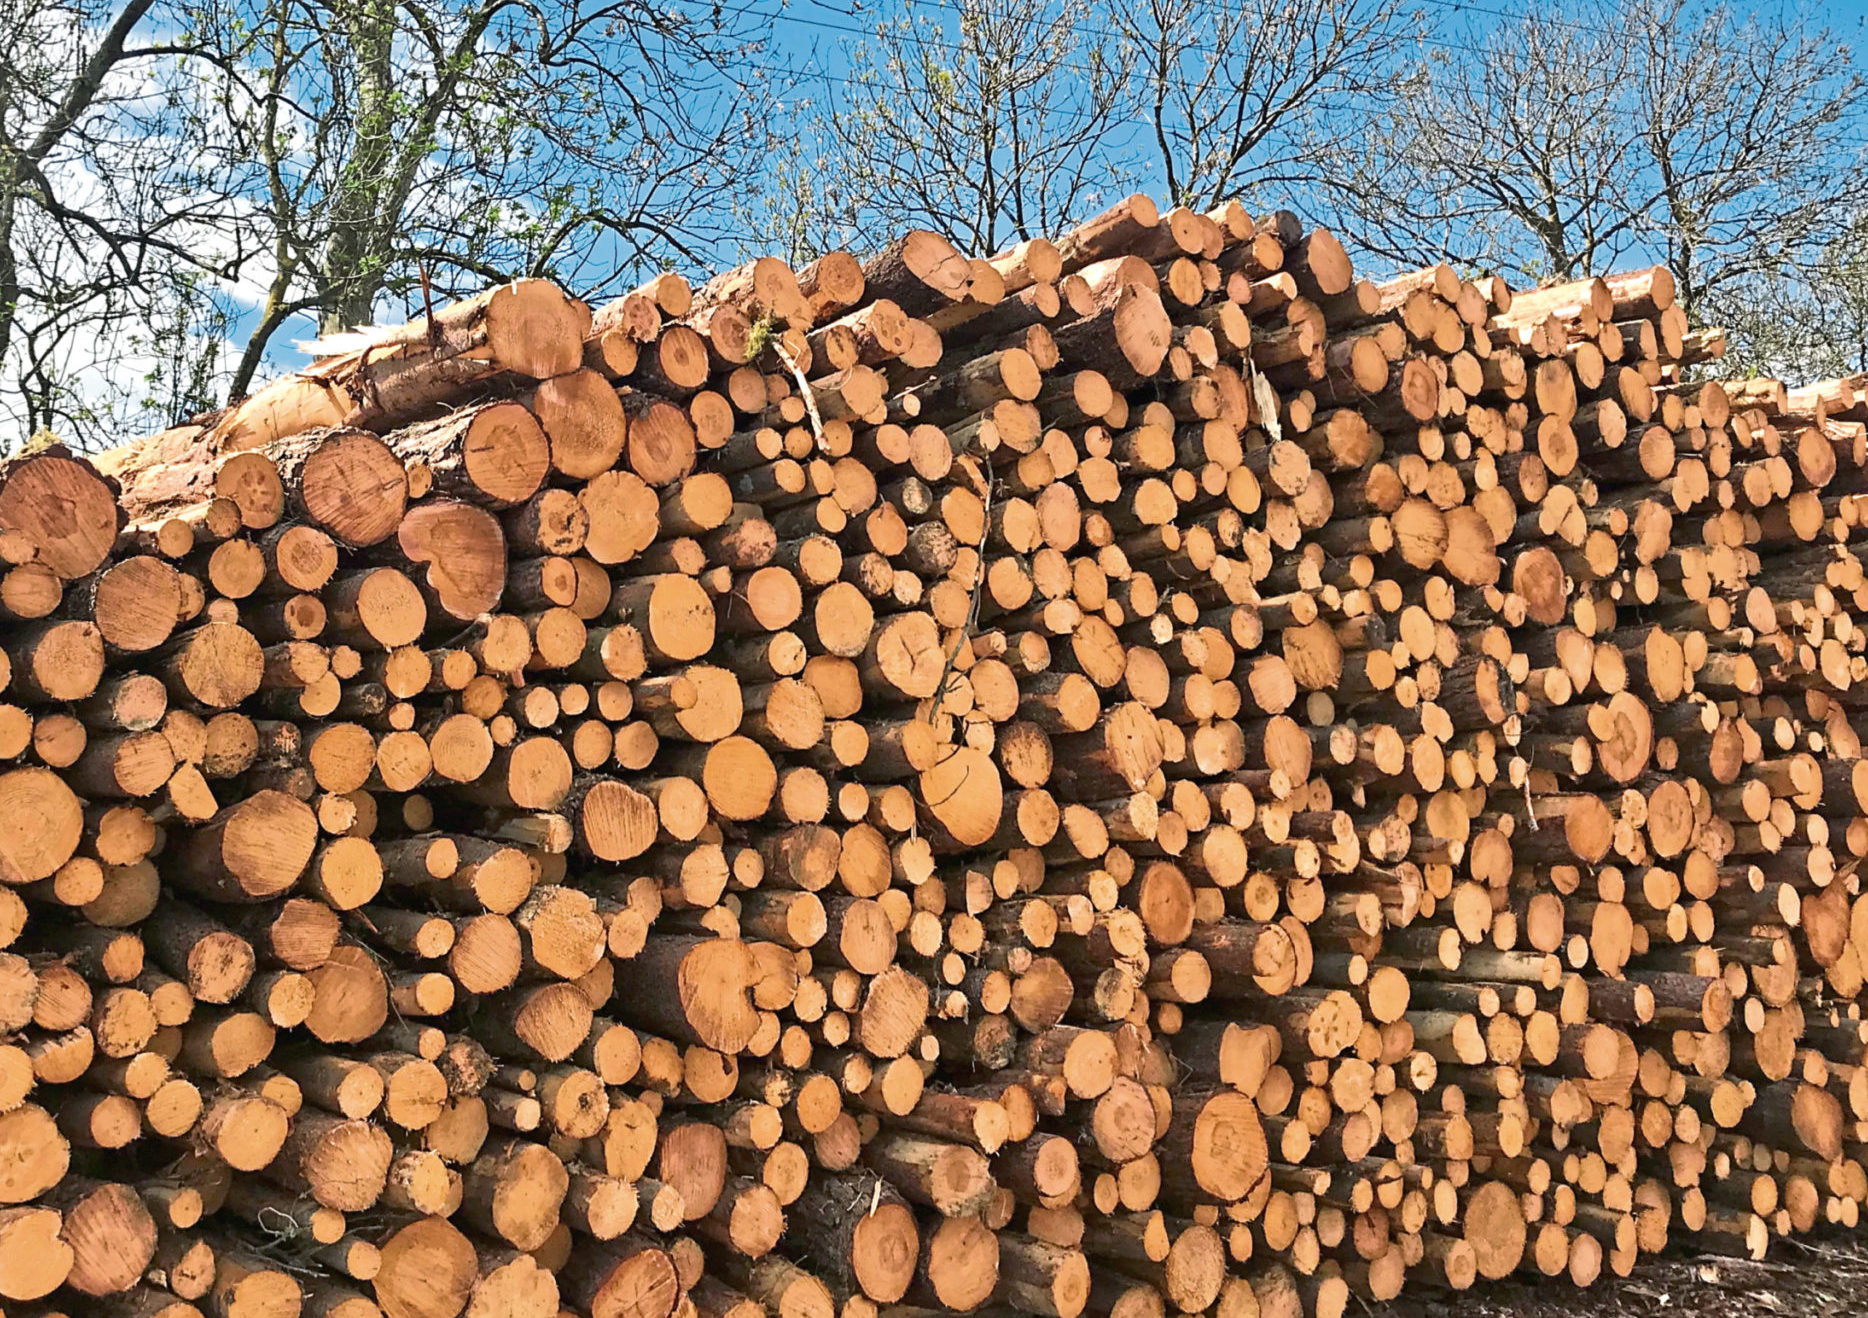 Timber will be bought from sustainable Scottish forests and turned into wood chip on East Balmirmer farm.